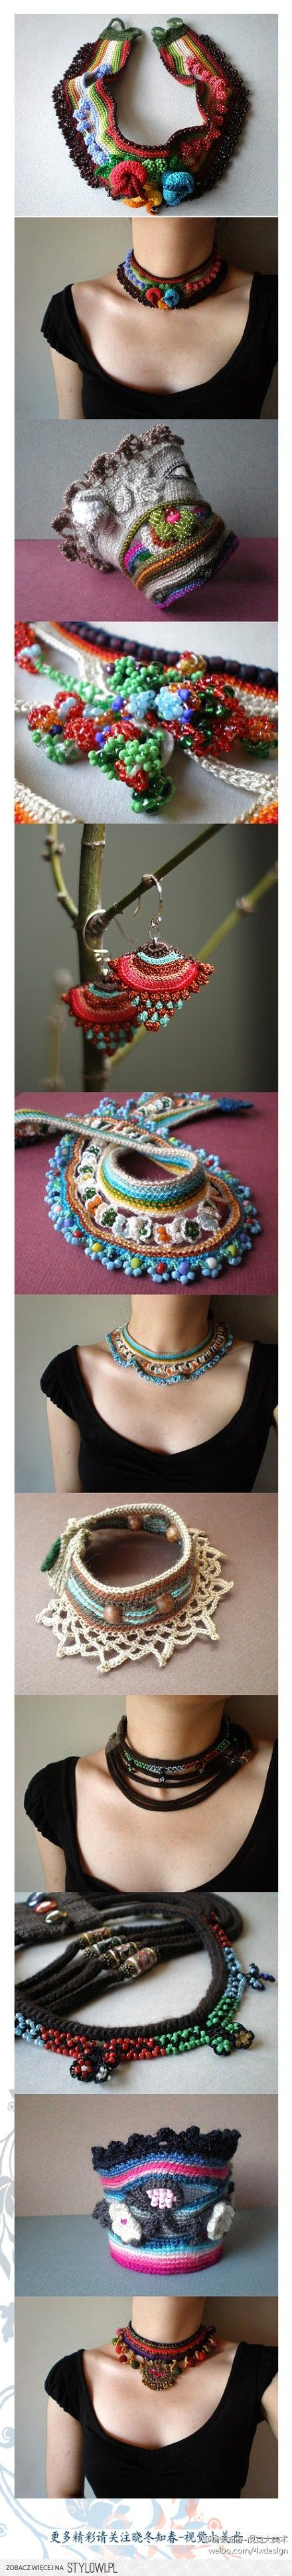 Popular Pix  ideas con crochet